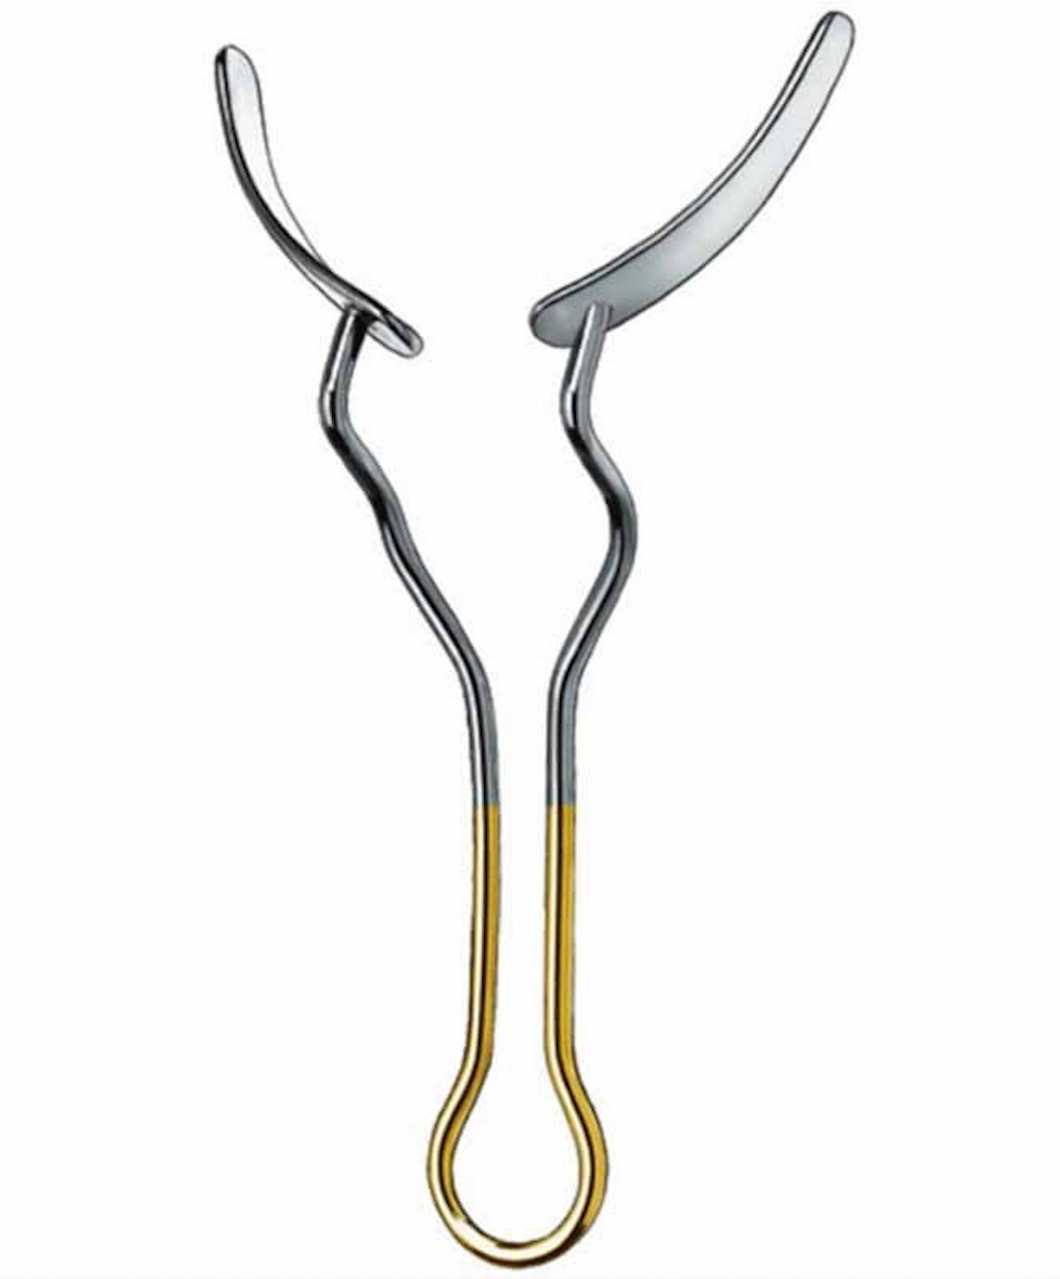 Maty Cheek Retractor is used to hold mucoperiosteal flaps, cheeks, lips away from the surgical area.